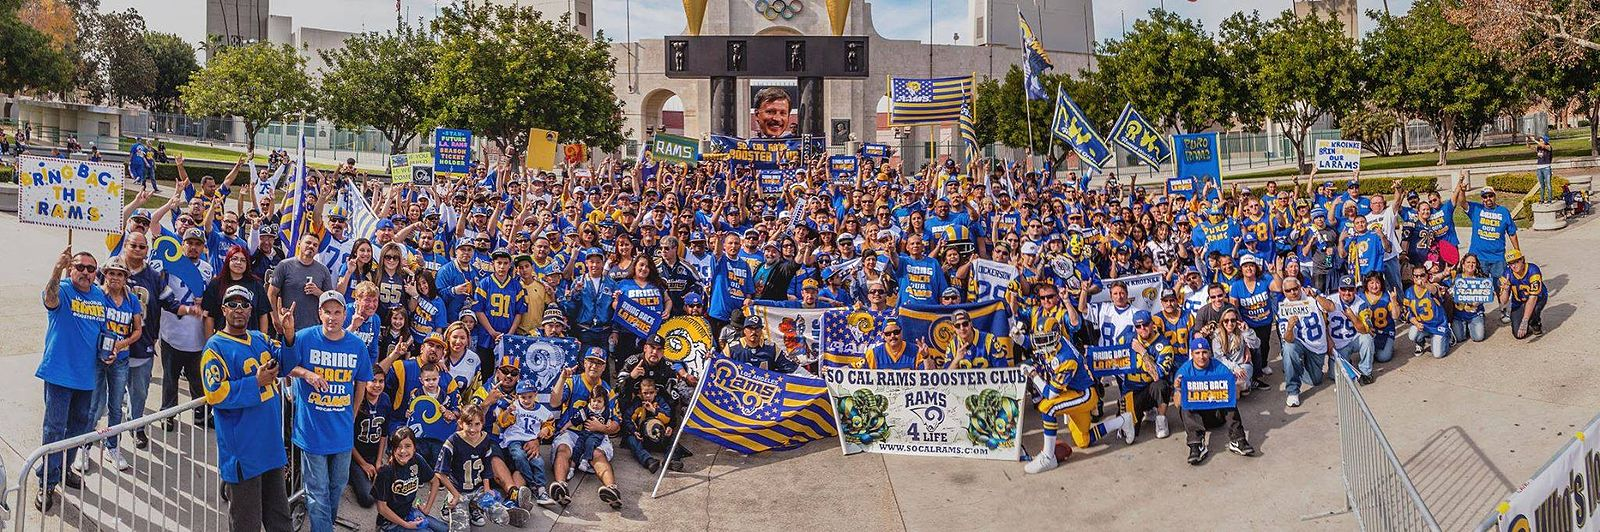 How Can the Rams Improve the Fan Experience?